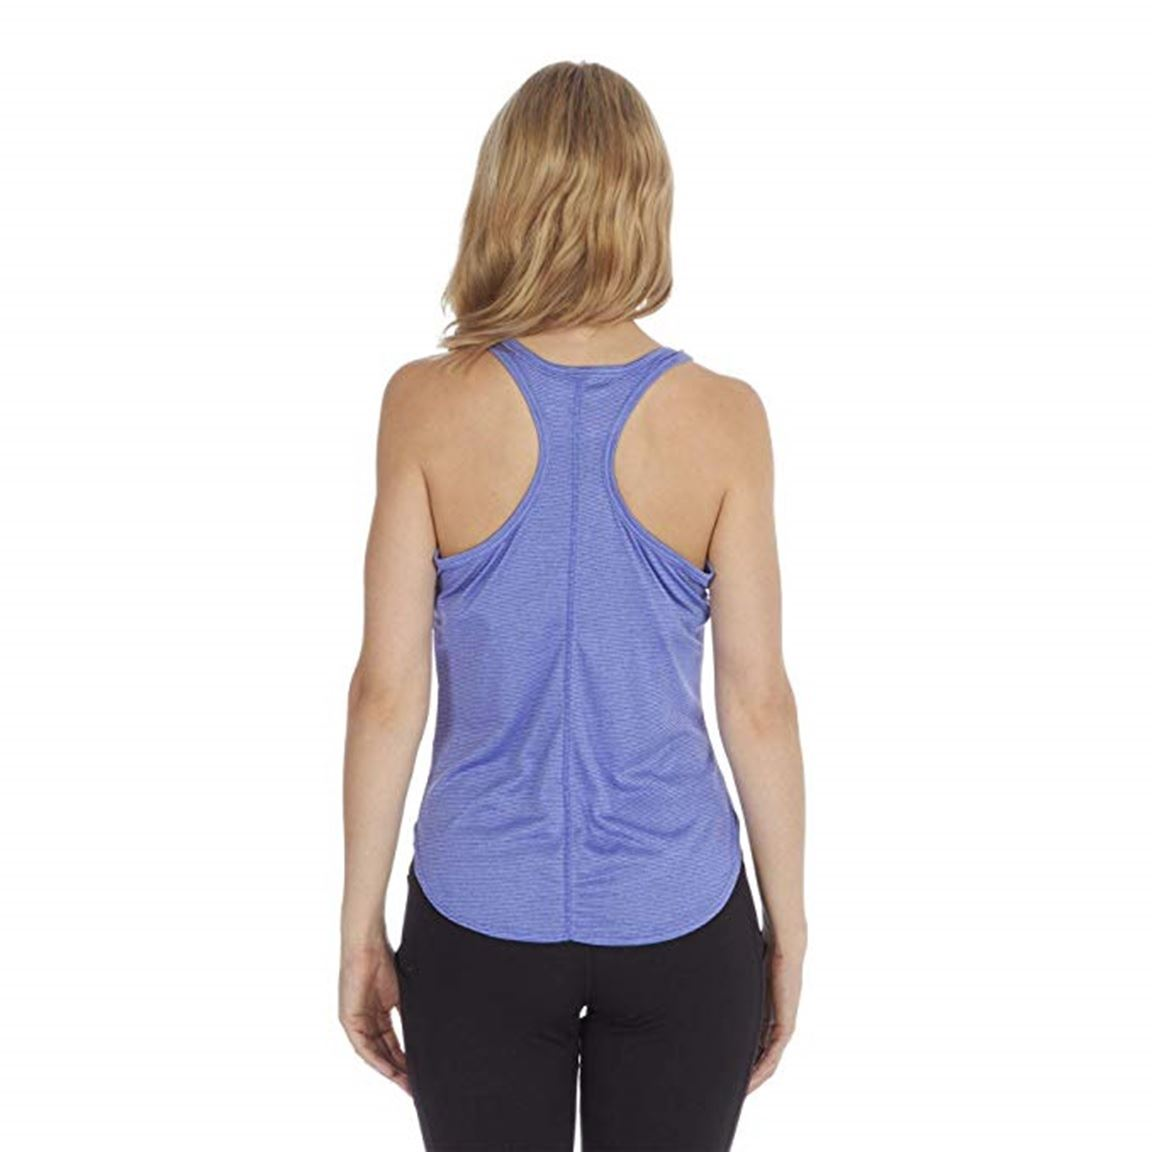 Ladies-Womens-Red-Tag-Active-Racer-Back-Yoga-Gym-Exercise-Vest-Tank-Top thumbnail 13